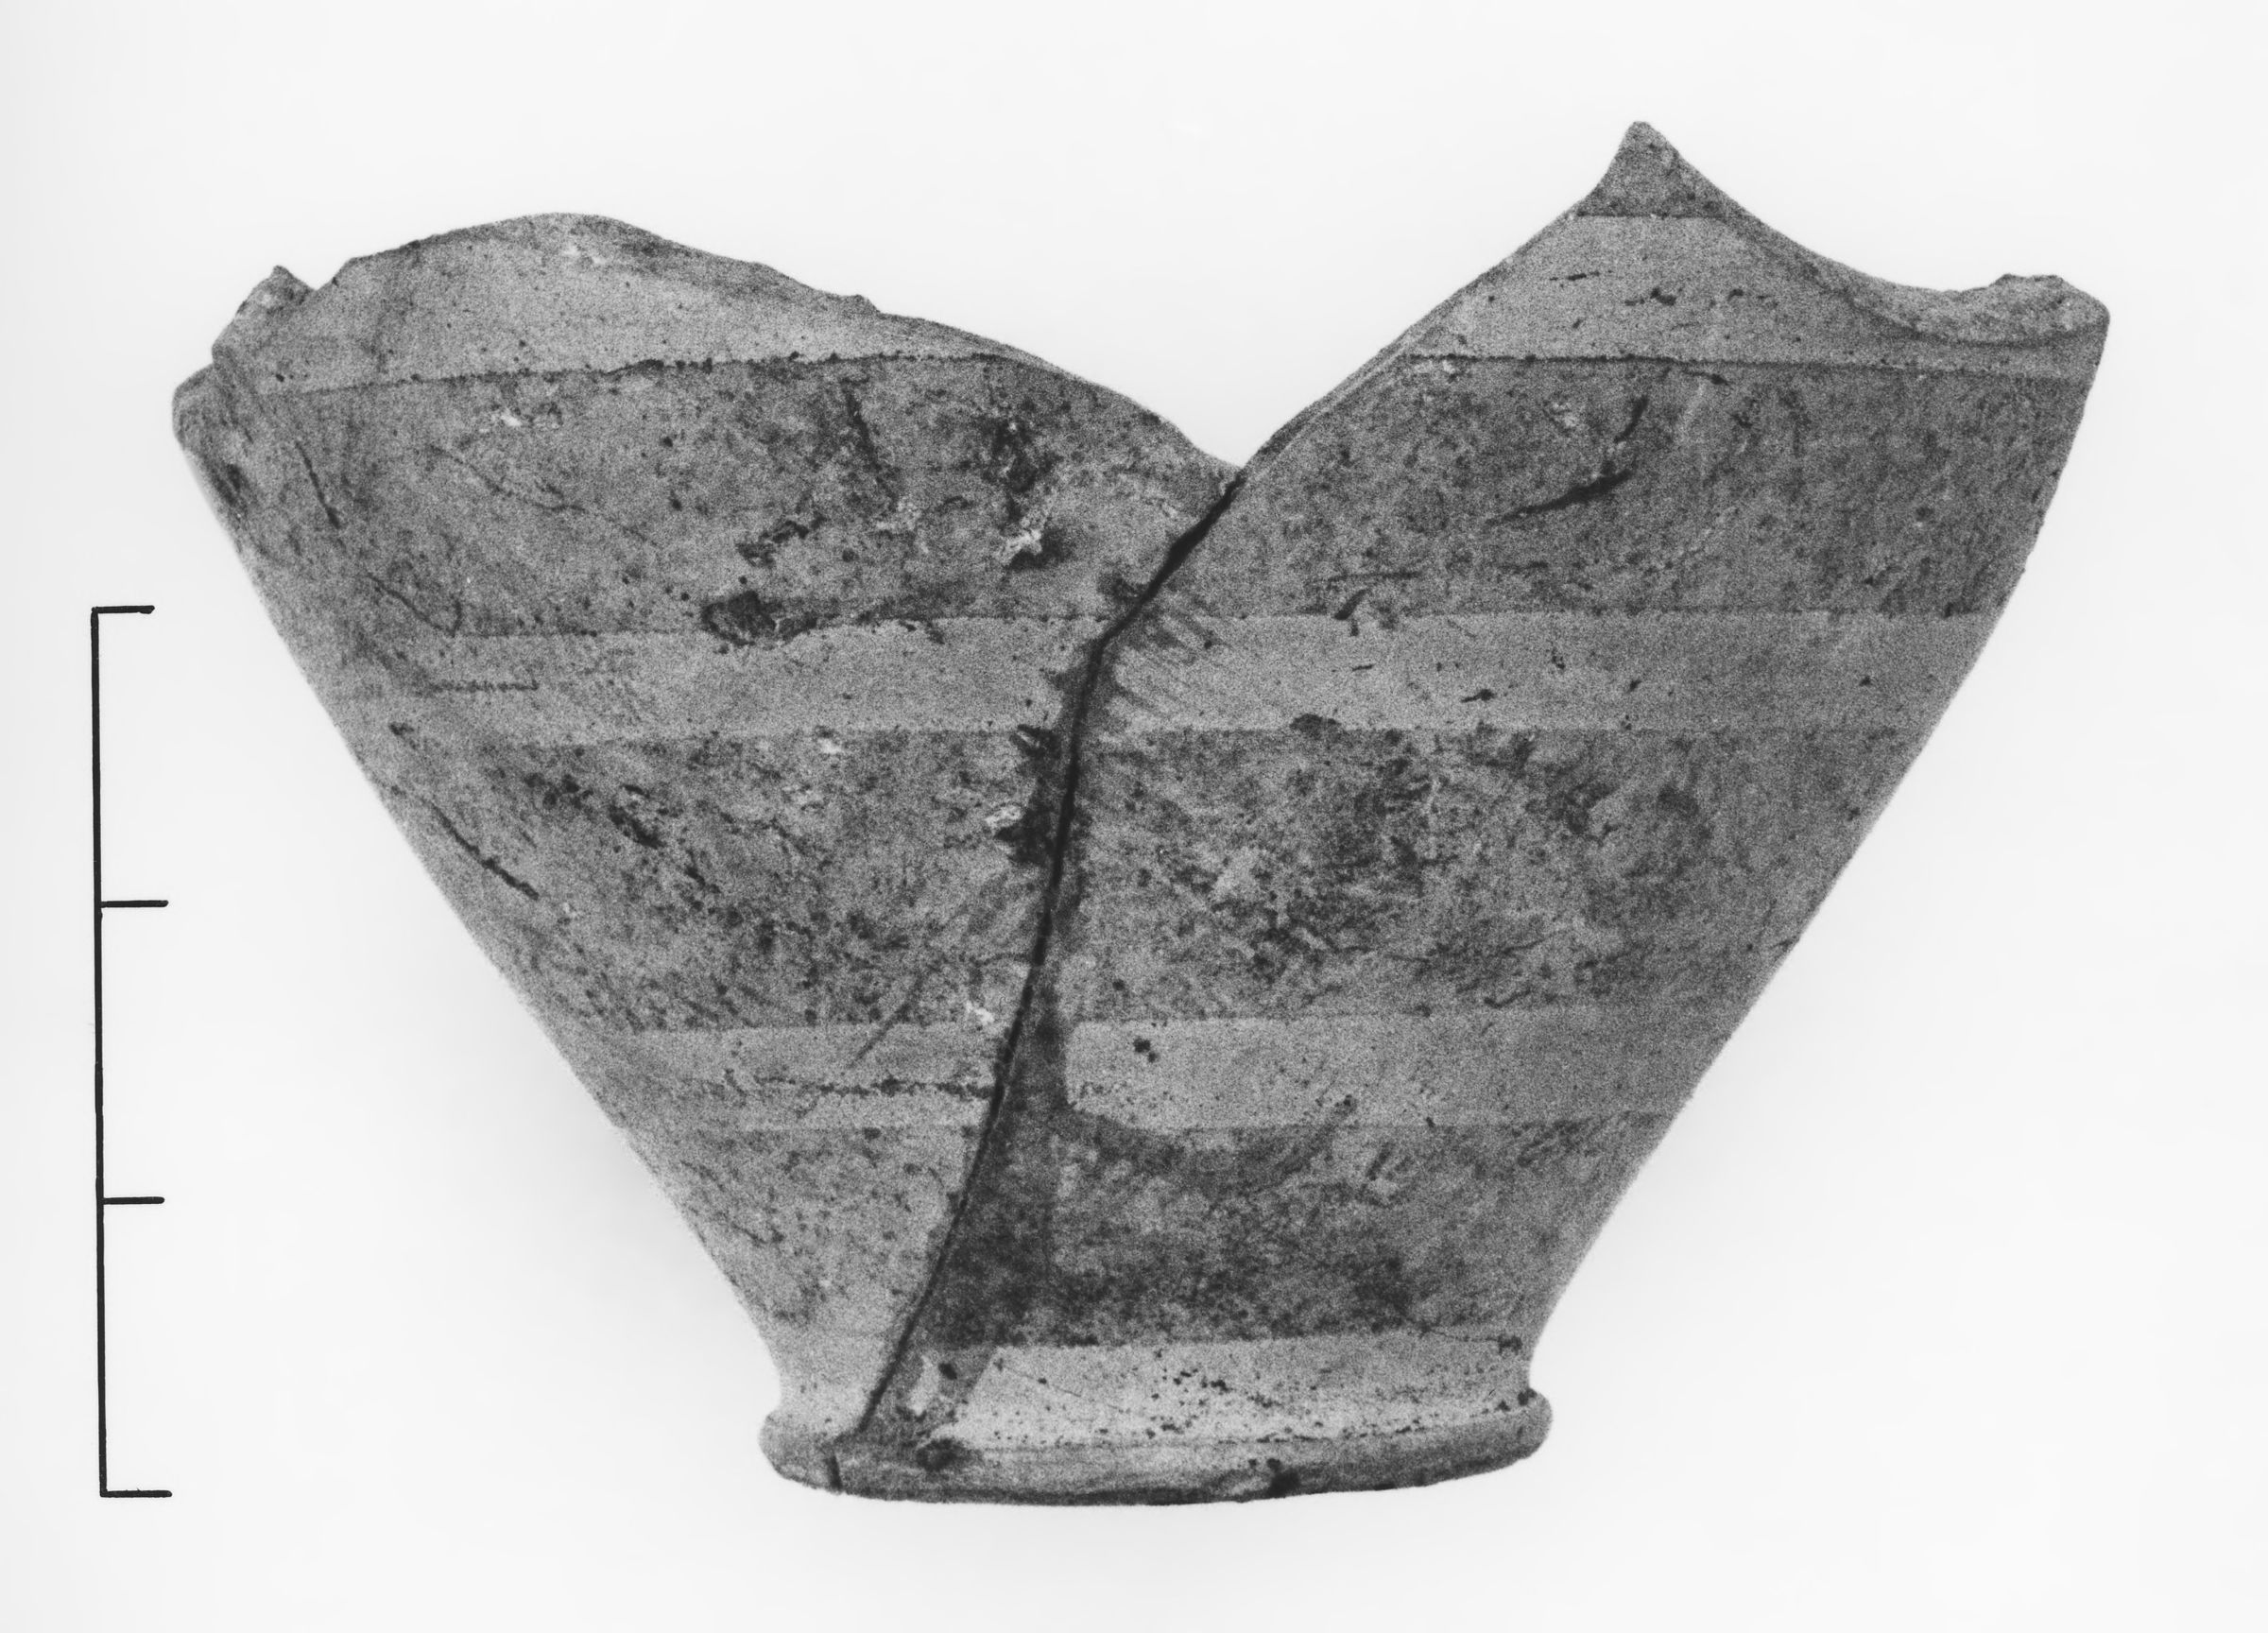 Lower Portion of a Late Protocorinthian Oinochoe or Ovoid Aryballos